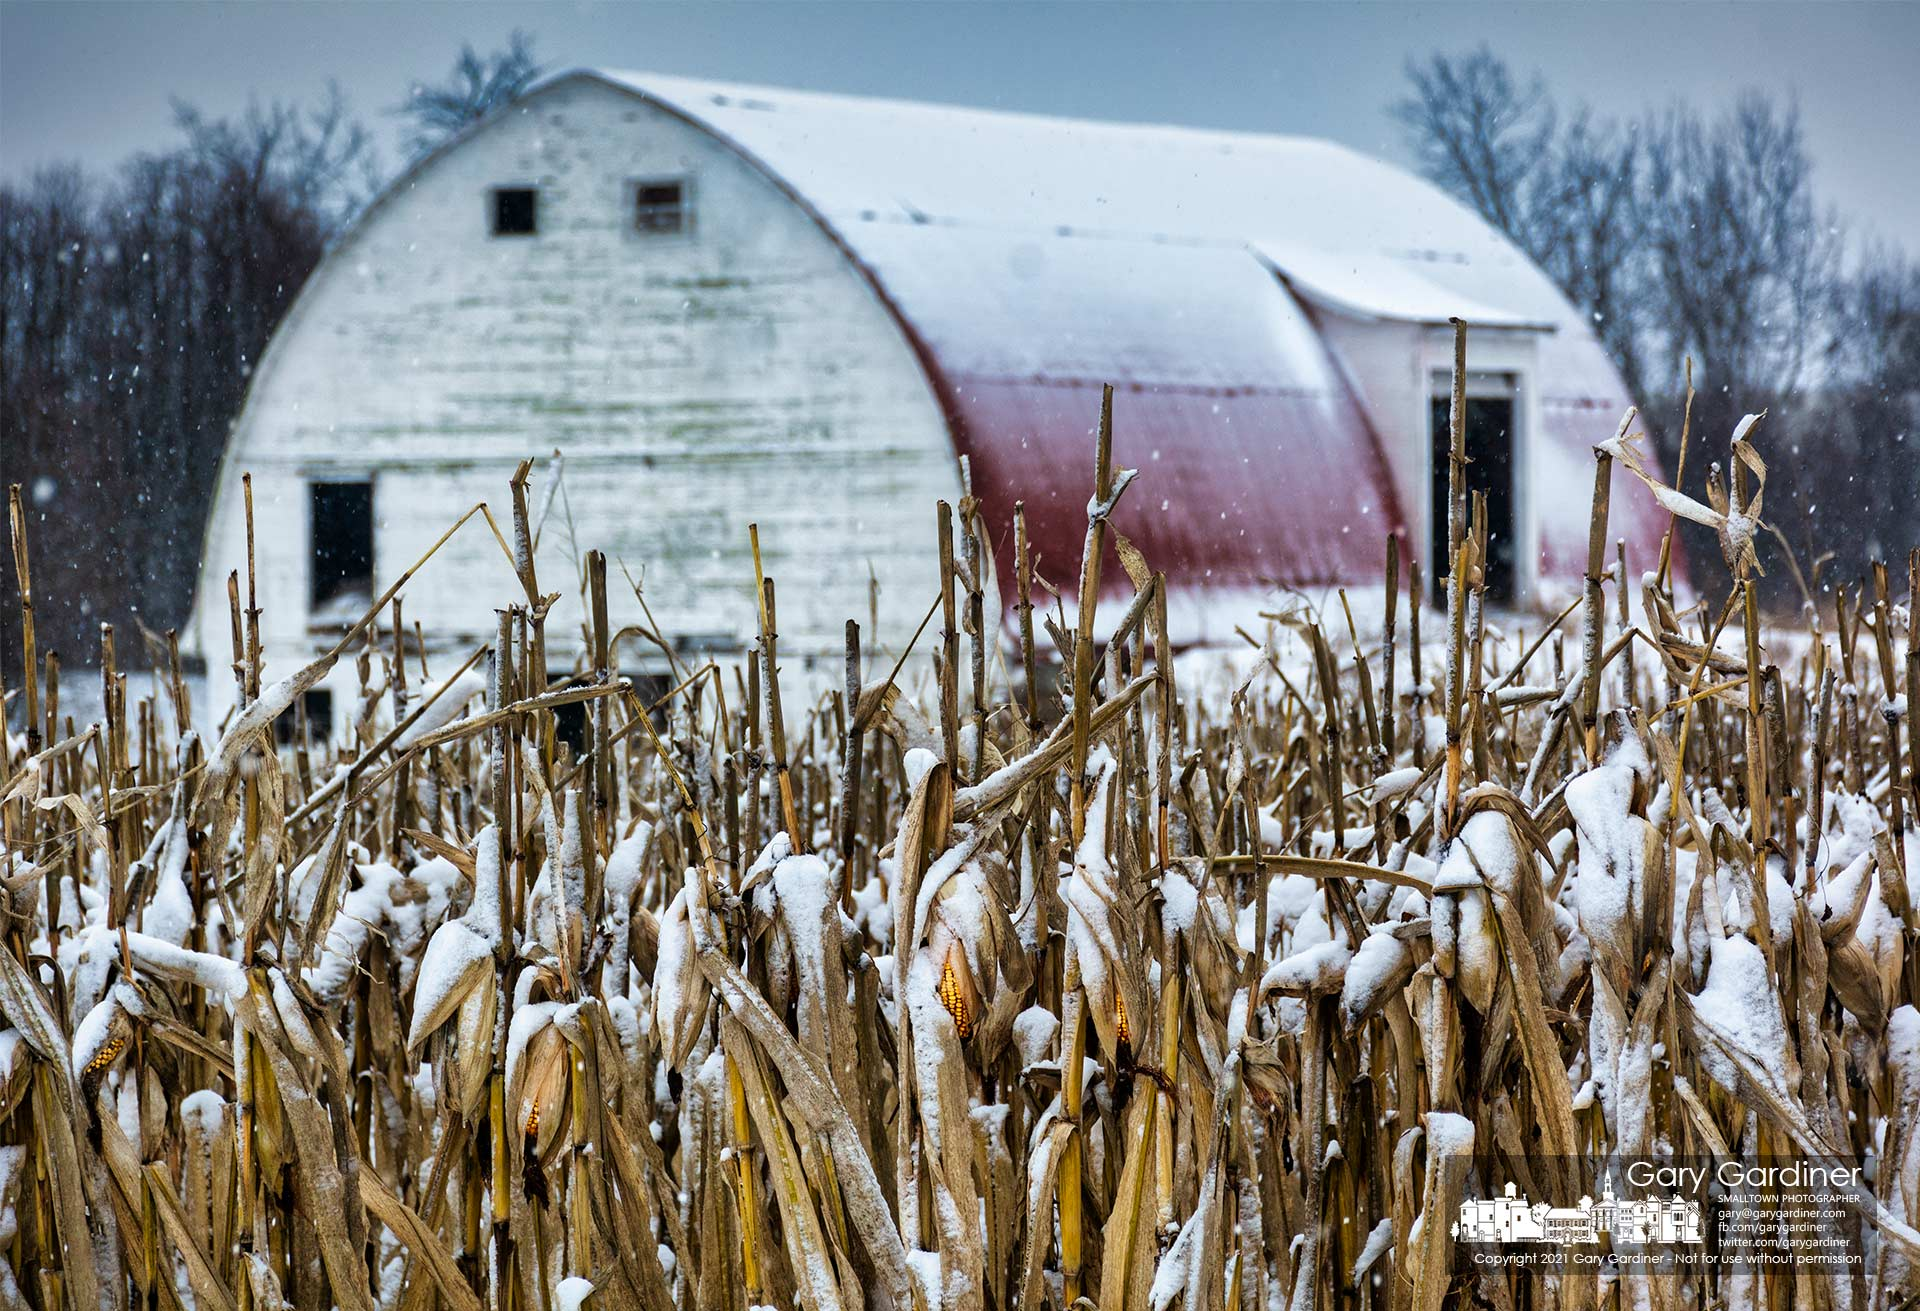 Snow continues to fall on the unharvested corn after an overnight storm brought a winter storm to the Braun Farm. My Final Photo for Feb. 1, 2021.